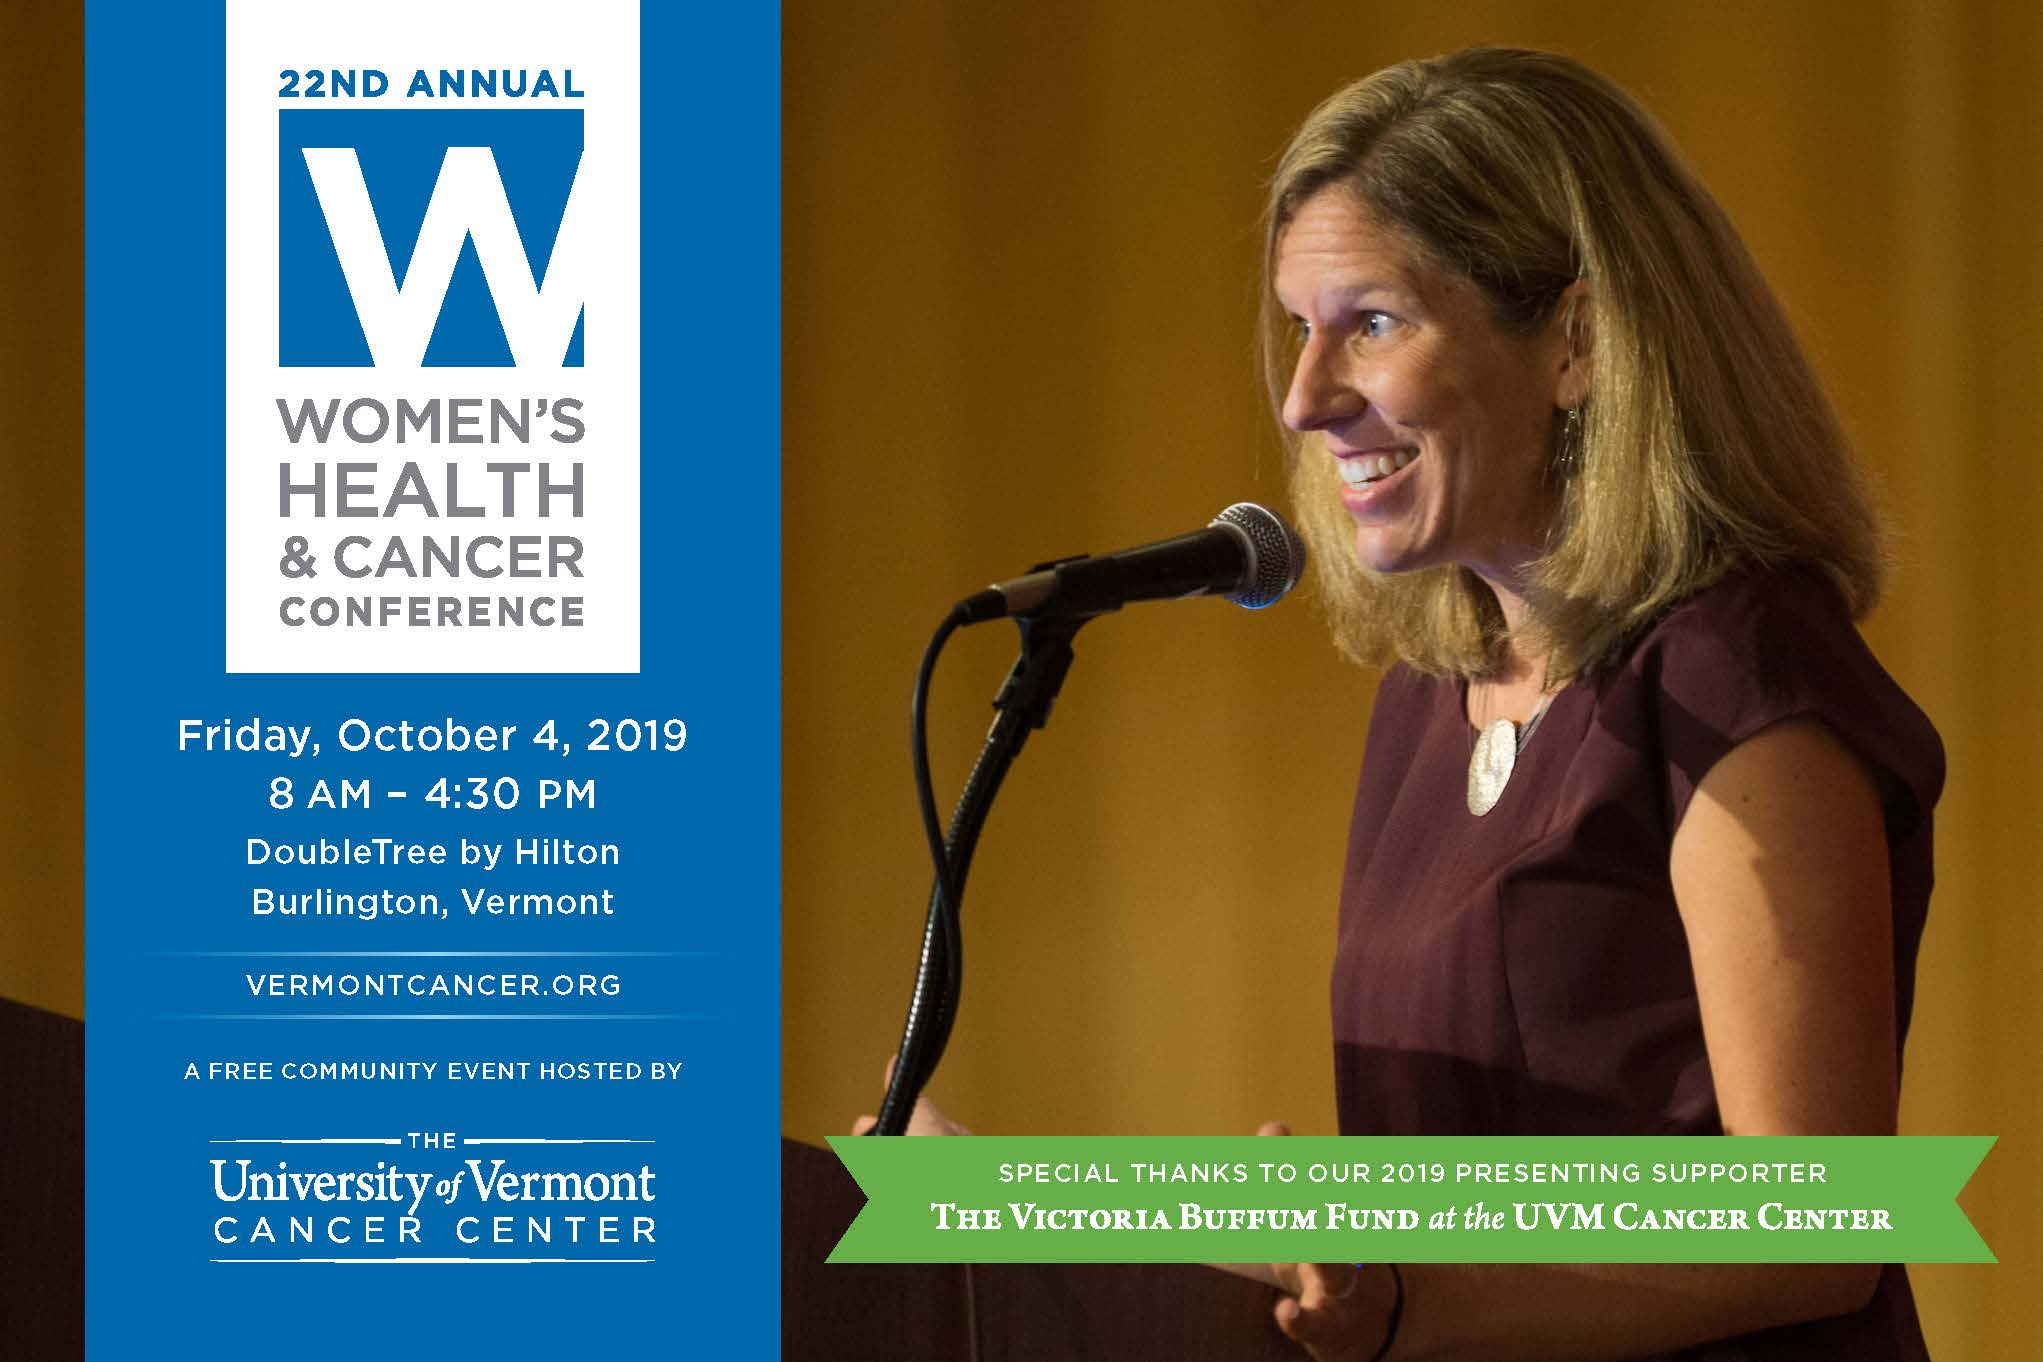 Women's Health & Cancer Conference Flyer